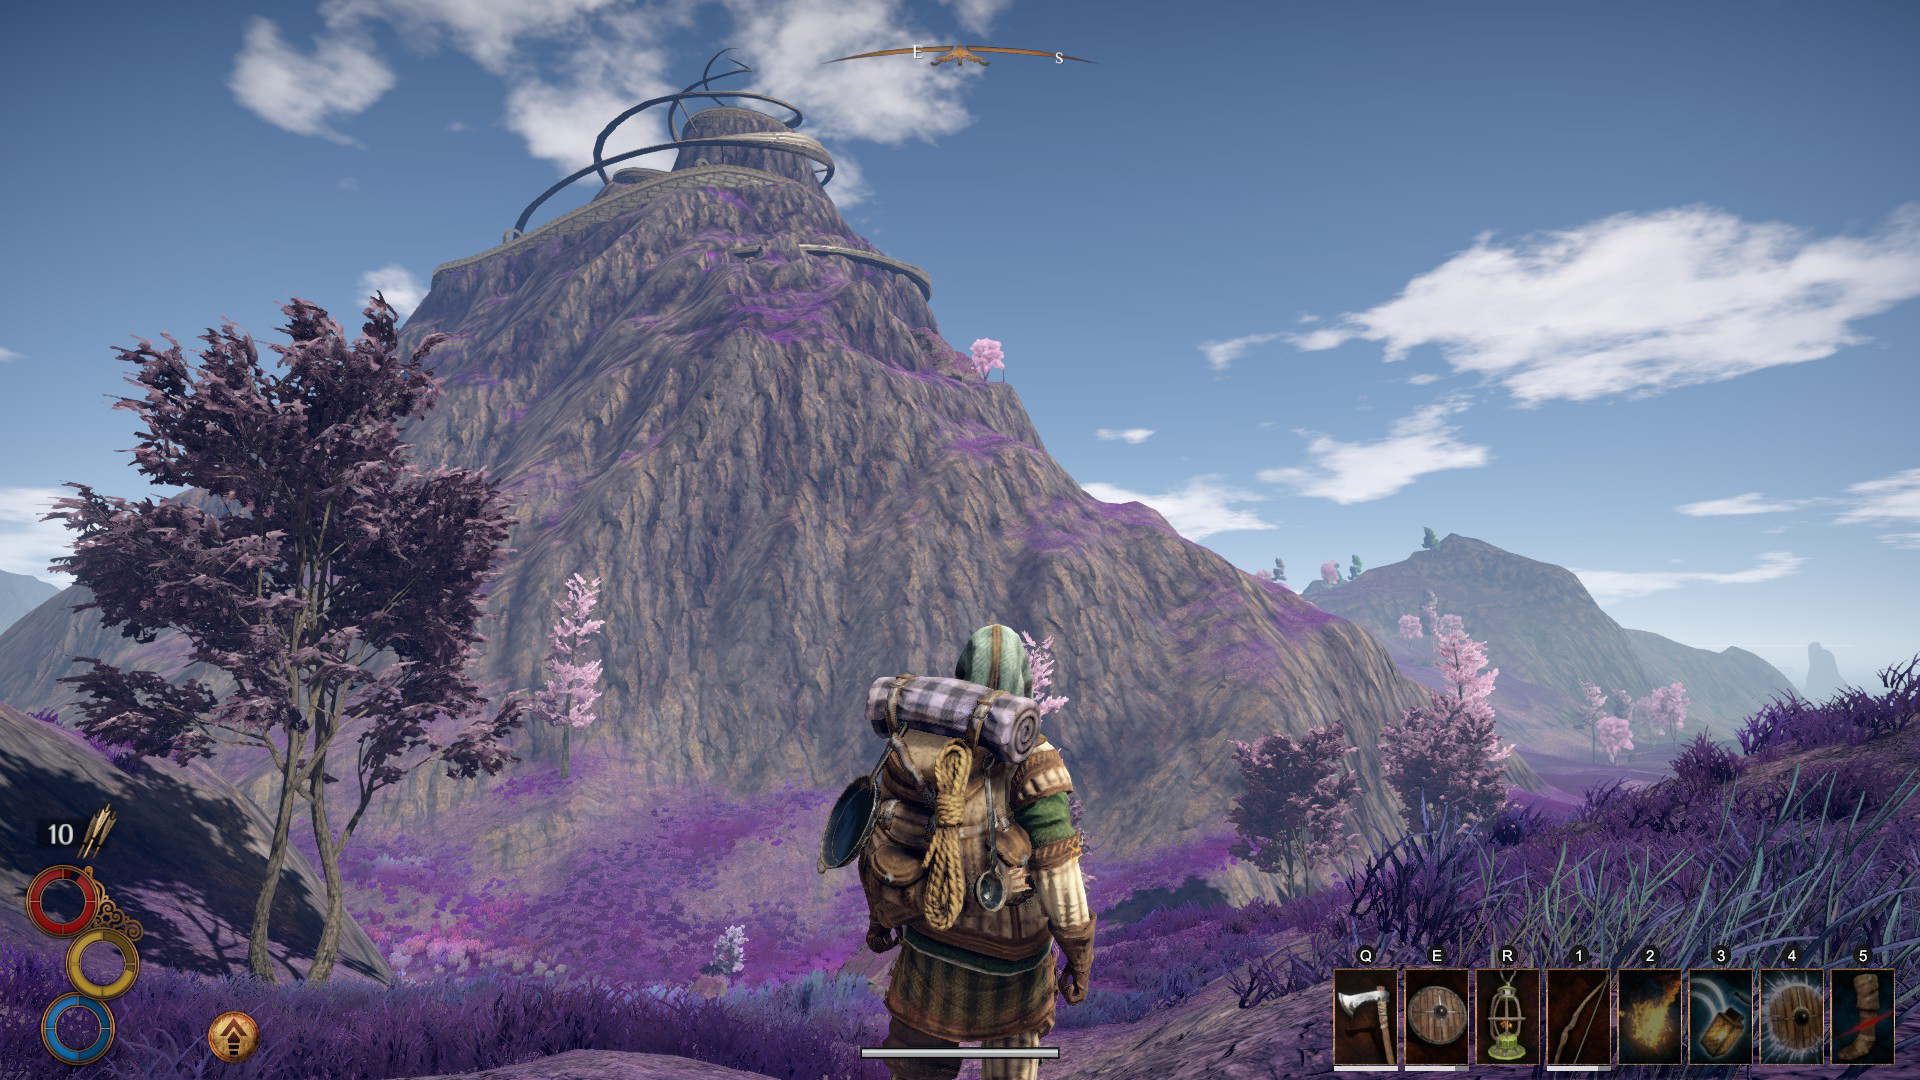 Fantasy RPG Outward is the survival game I've been looking for | PC